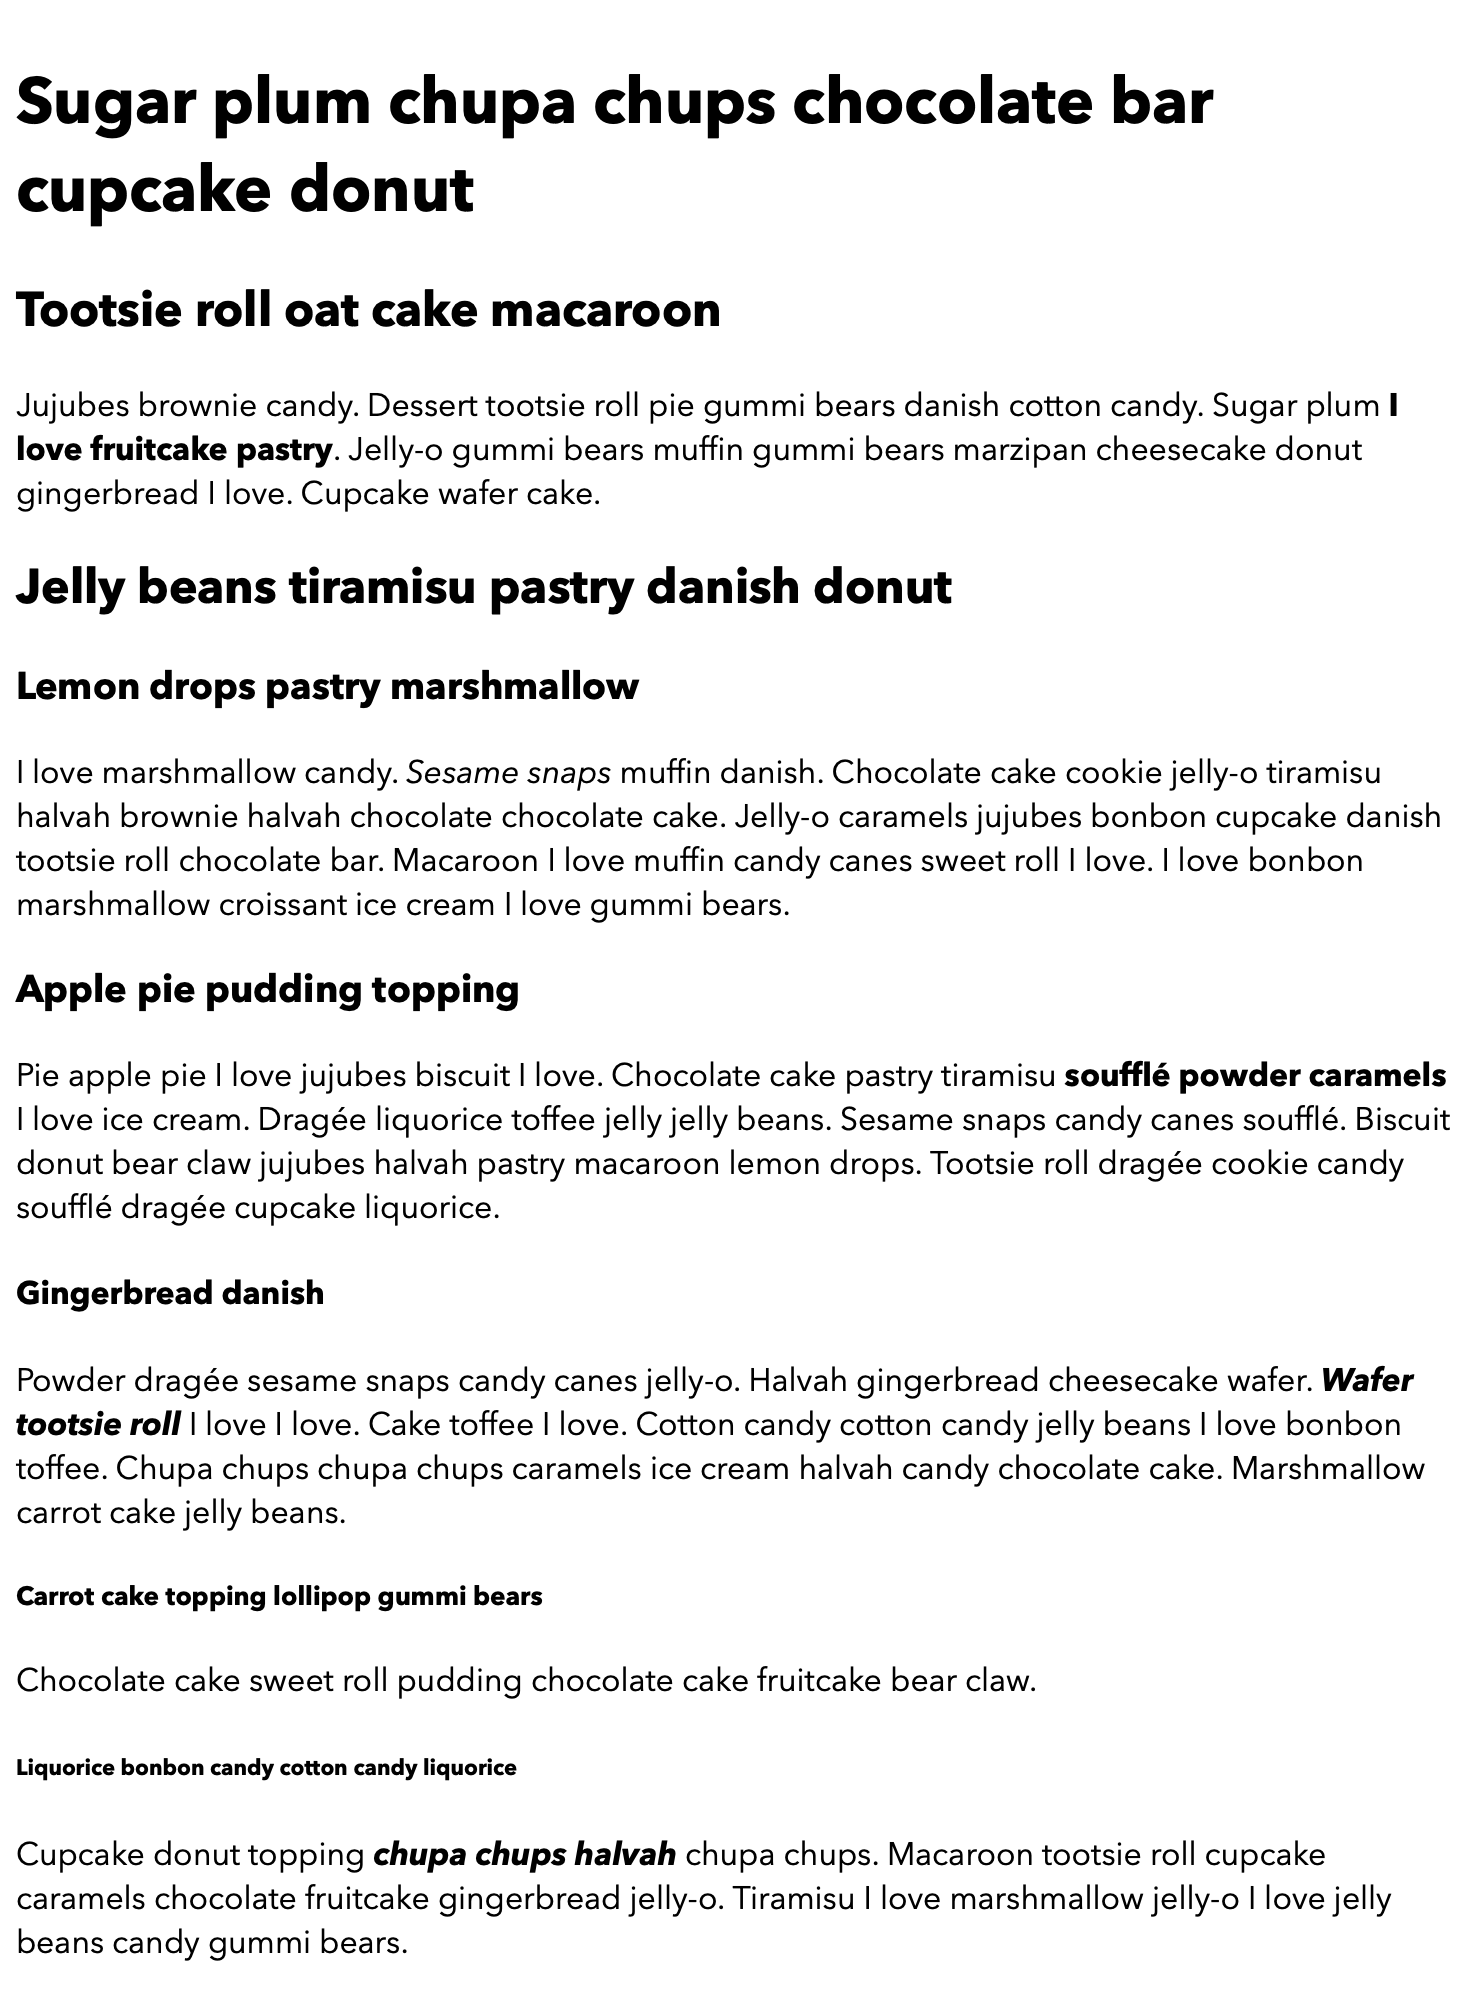 The content of the web page deplayed with the Avenir Next font in various font weights.